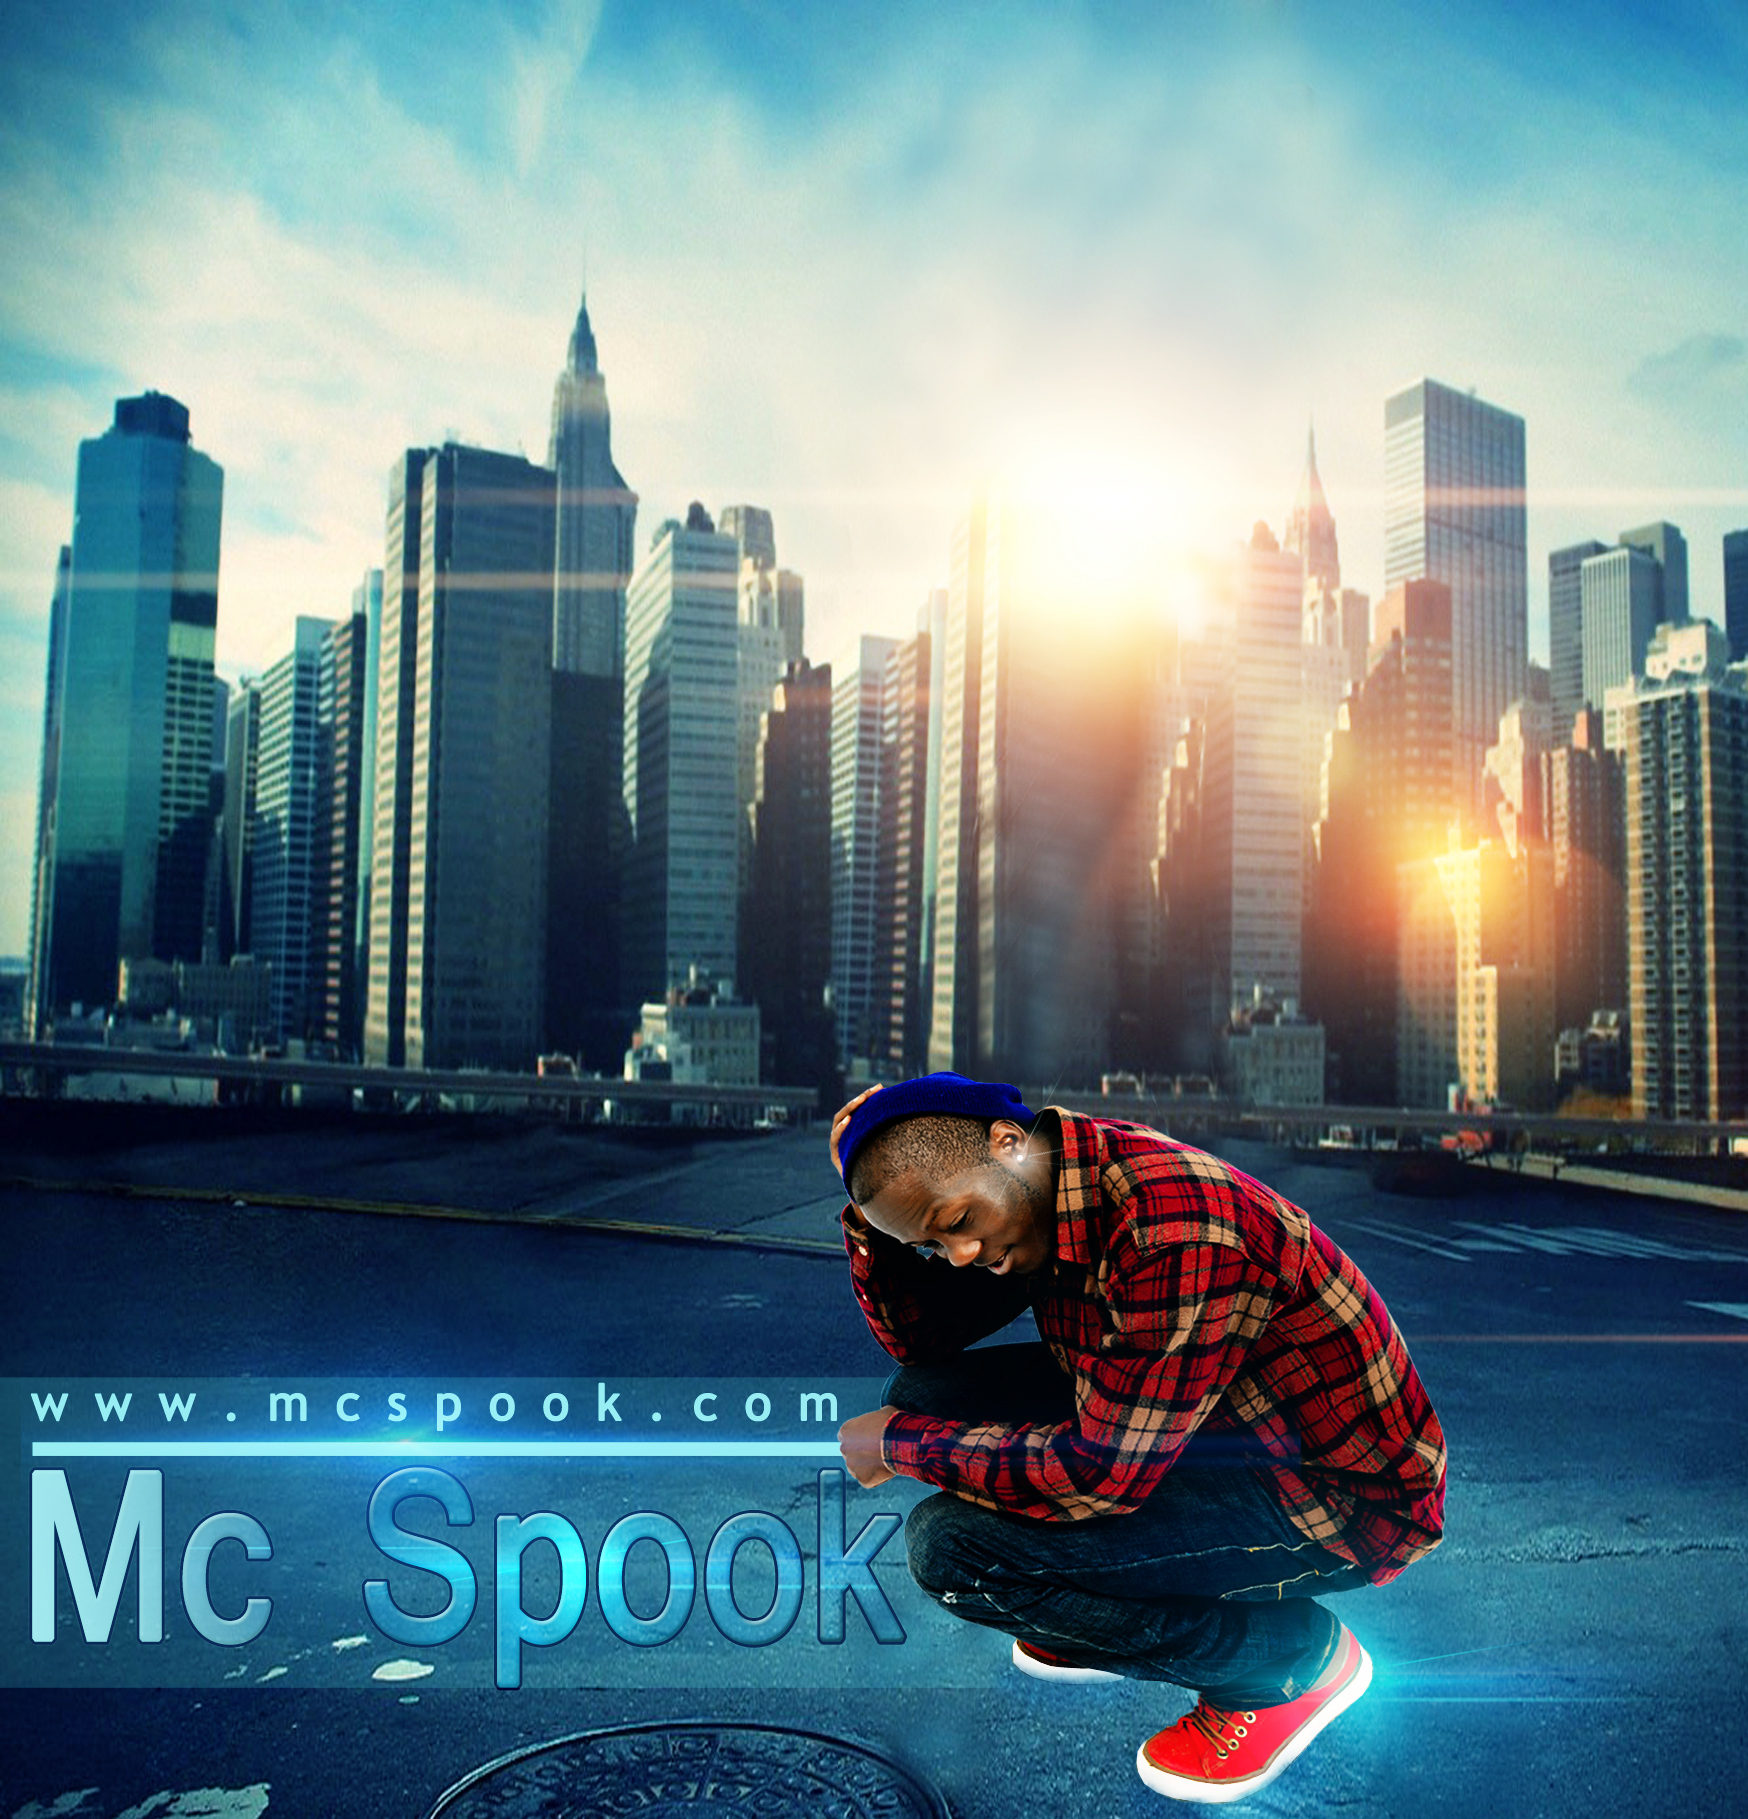 Mc Spook - 1_Eldoret State Of MindVoices